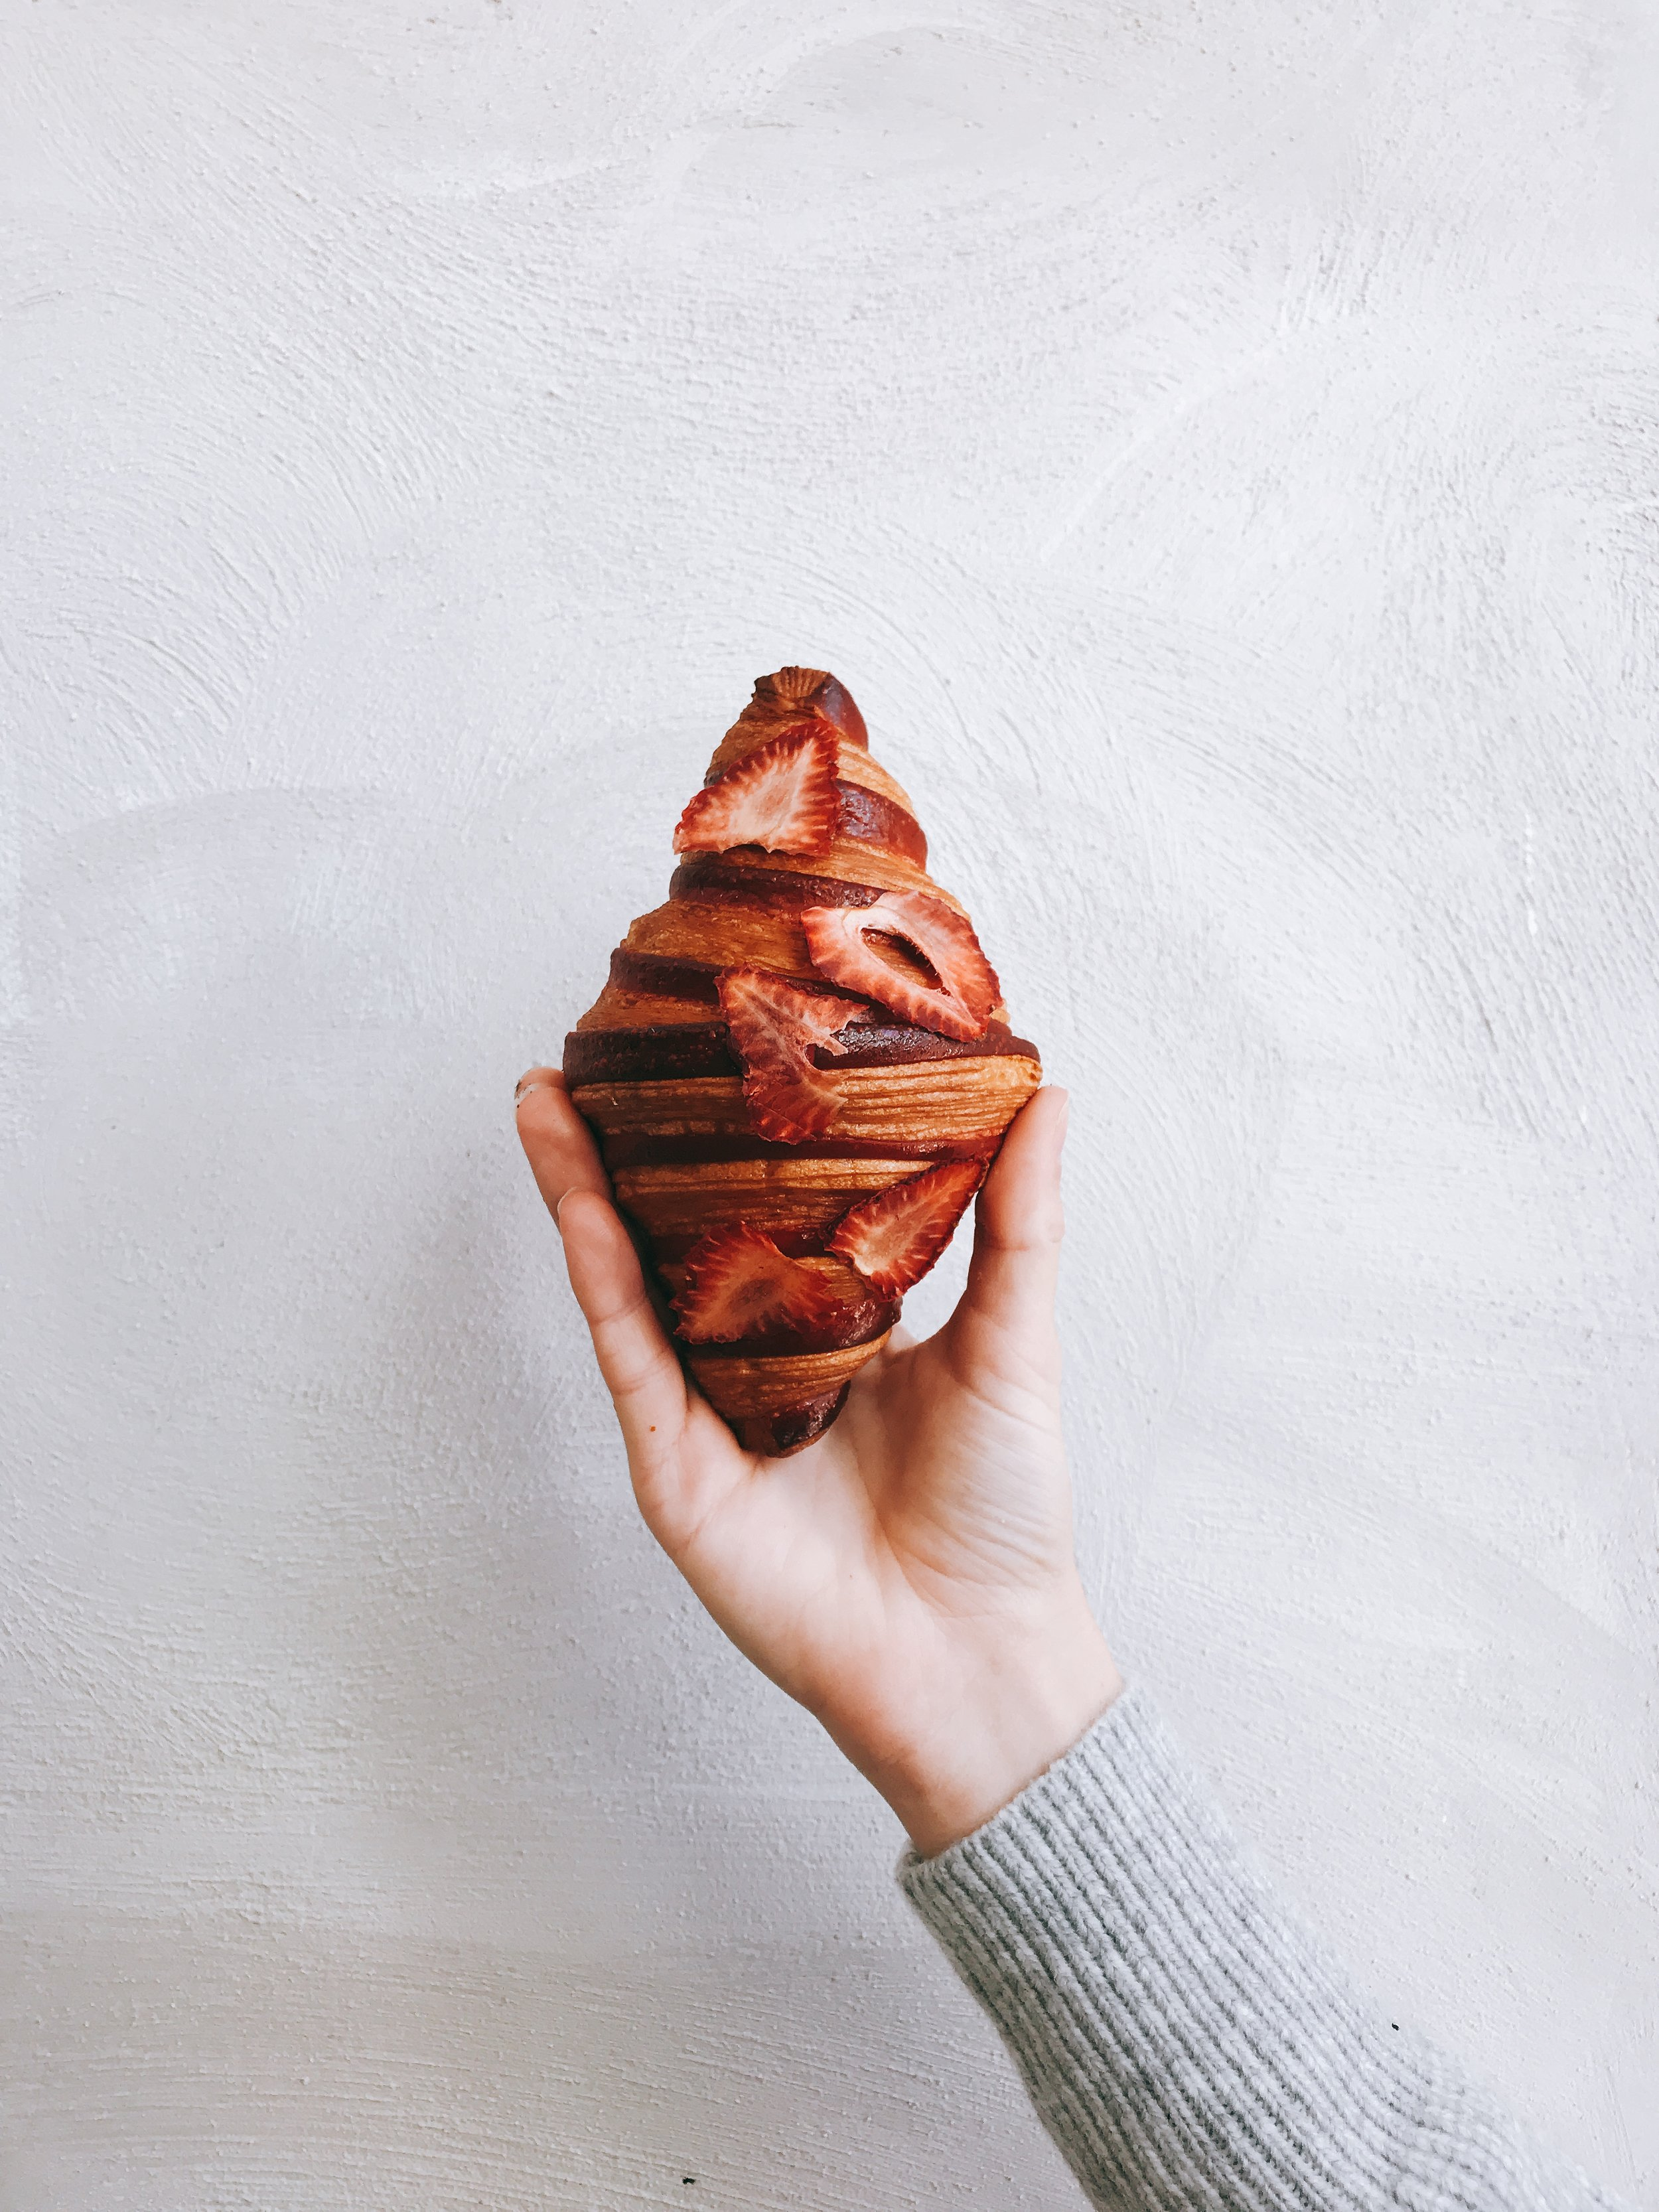 LYCHEE-BERRY JELLY BI-COLOR CROISSANT - THE NAME SAYS IT ALL...LITERALLY.